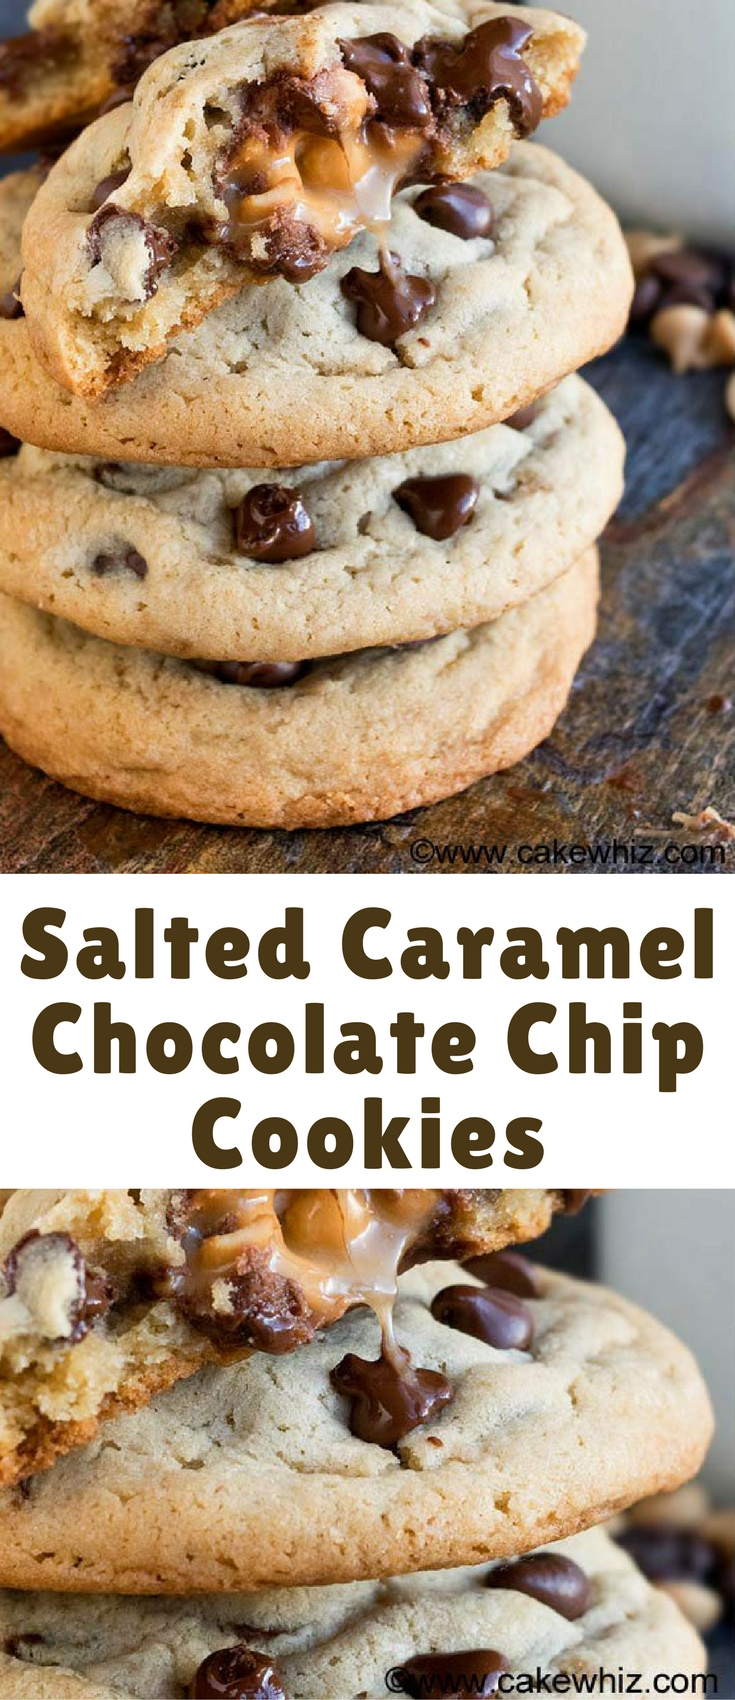 This soft and chewy salted caramel chocolate chip cookies recipe is easy to make and has an ooey gooey center. They are huge, like bakery style cookies!